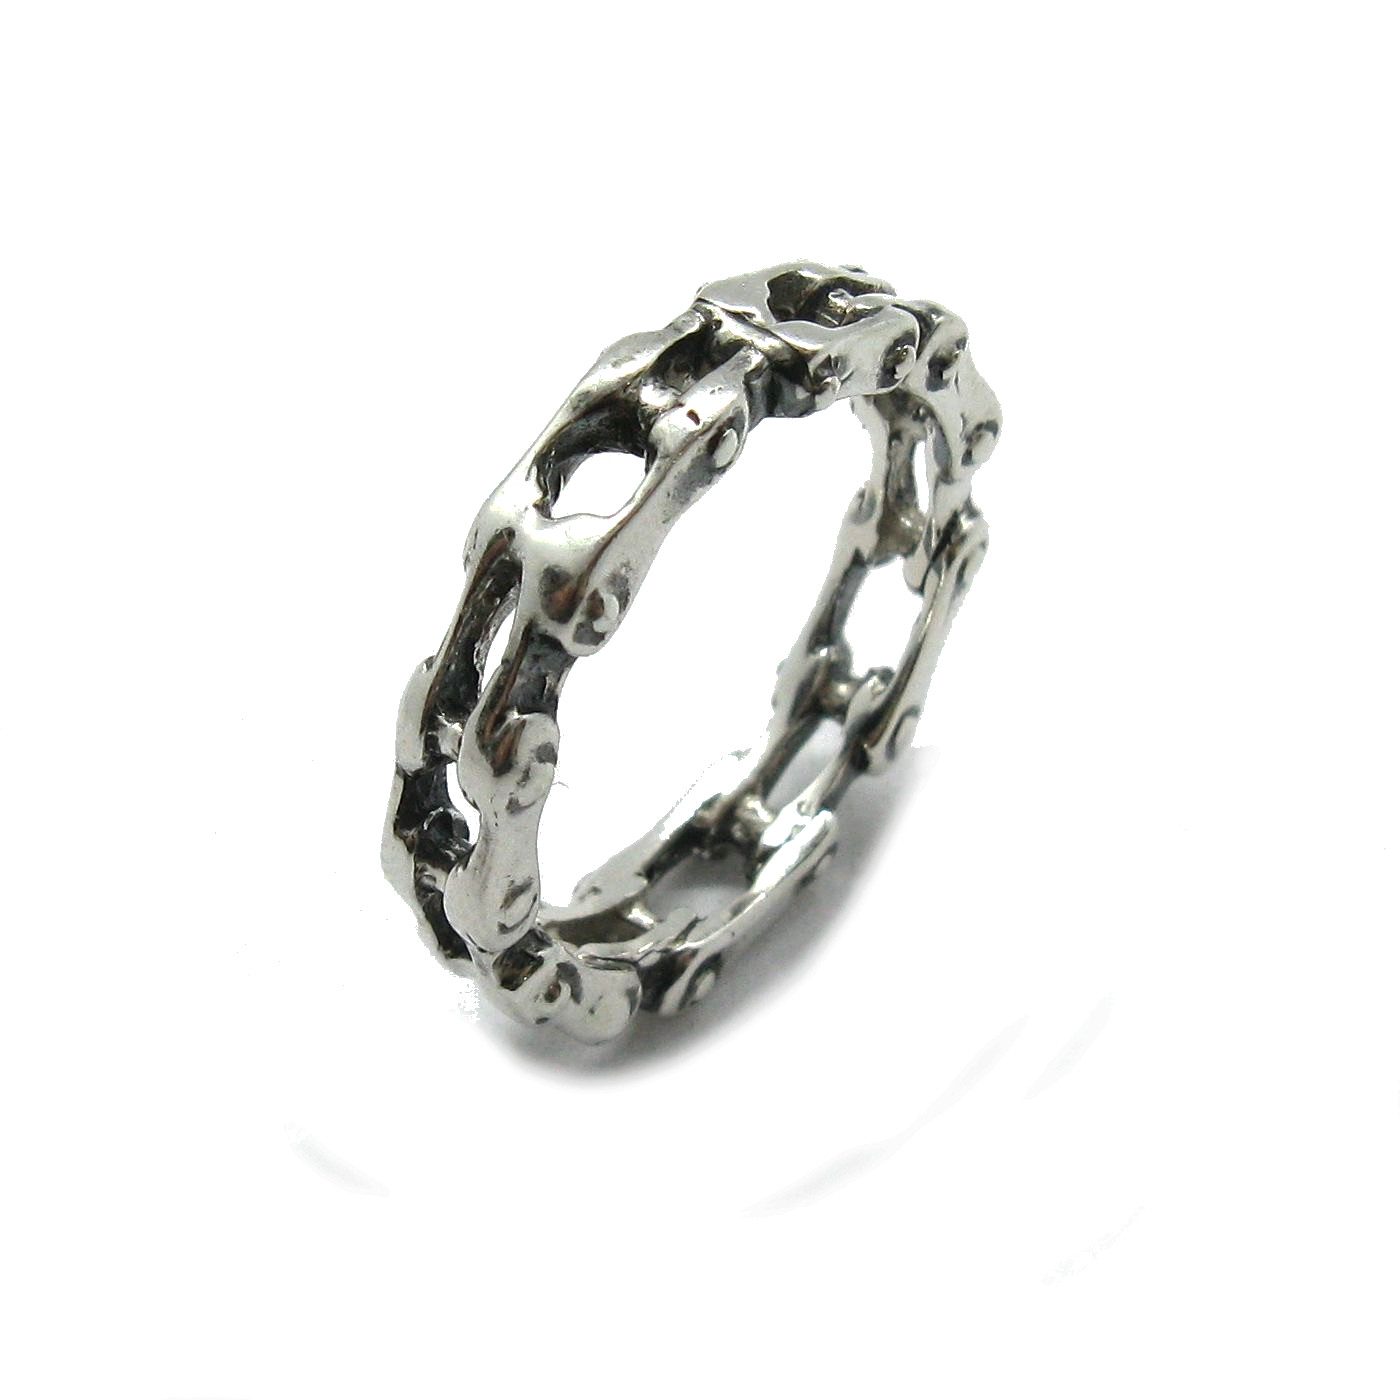 Silver ring - R001825